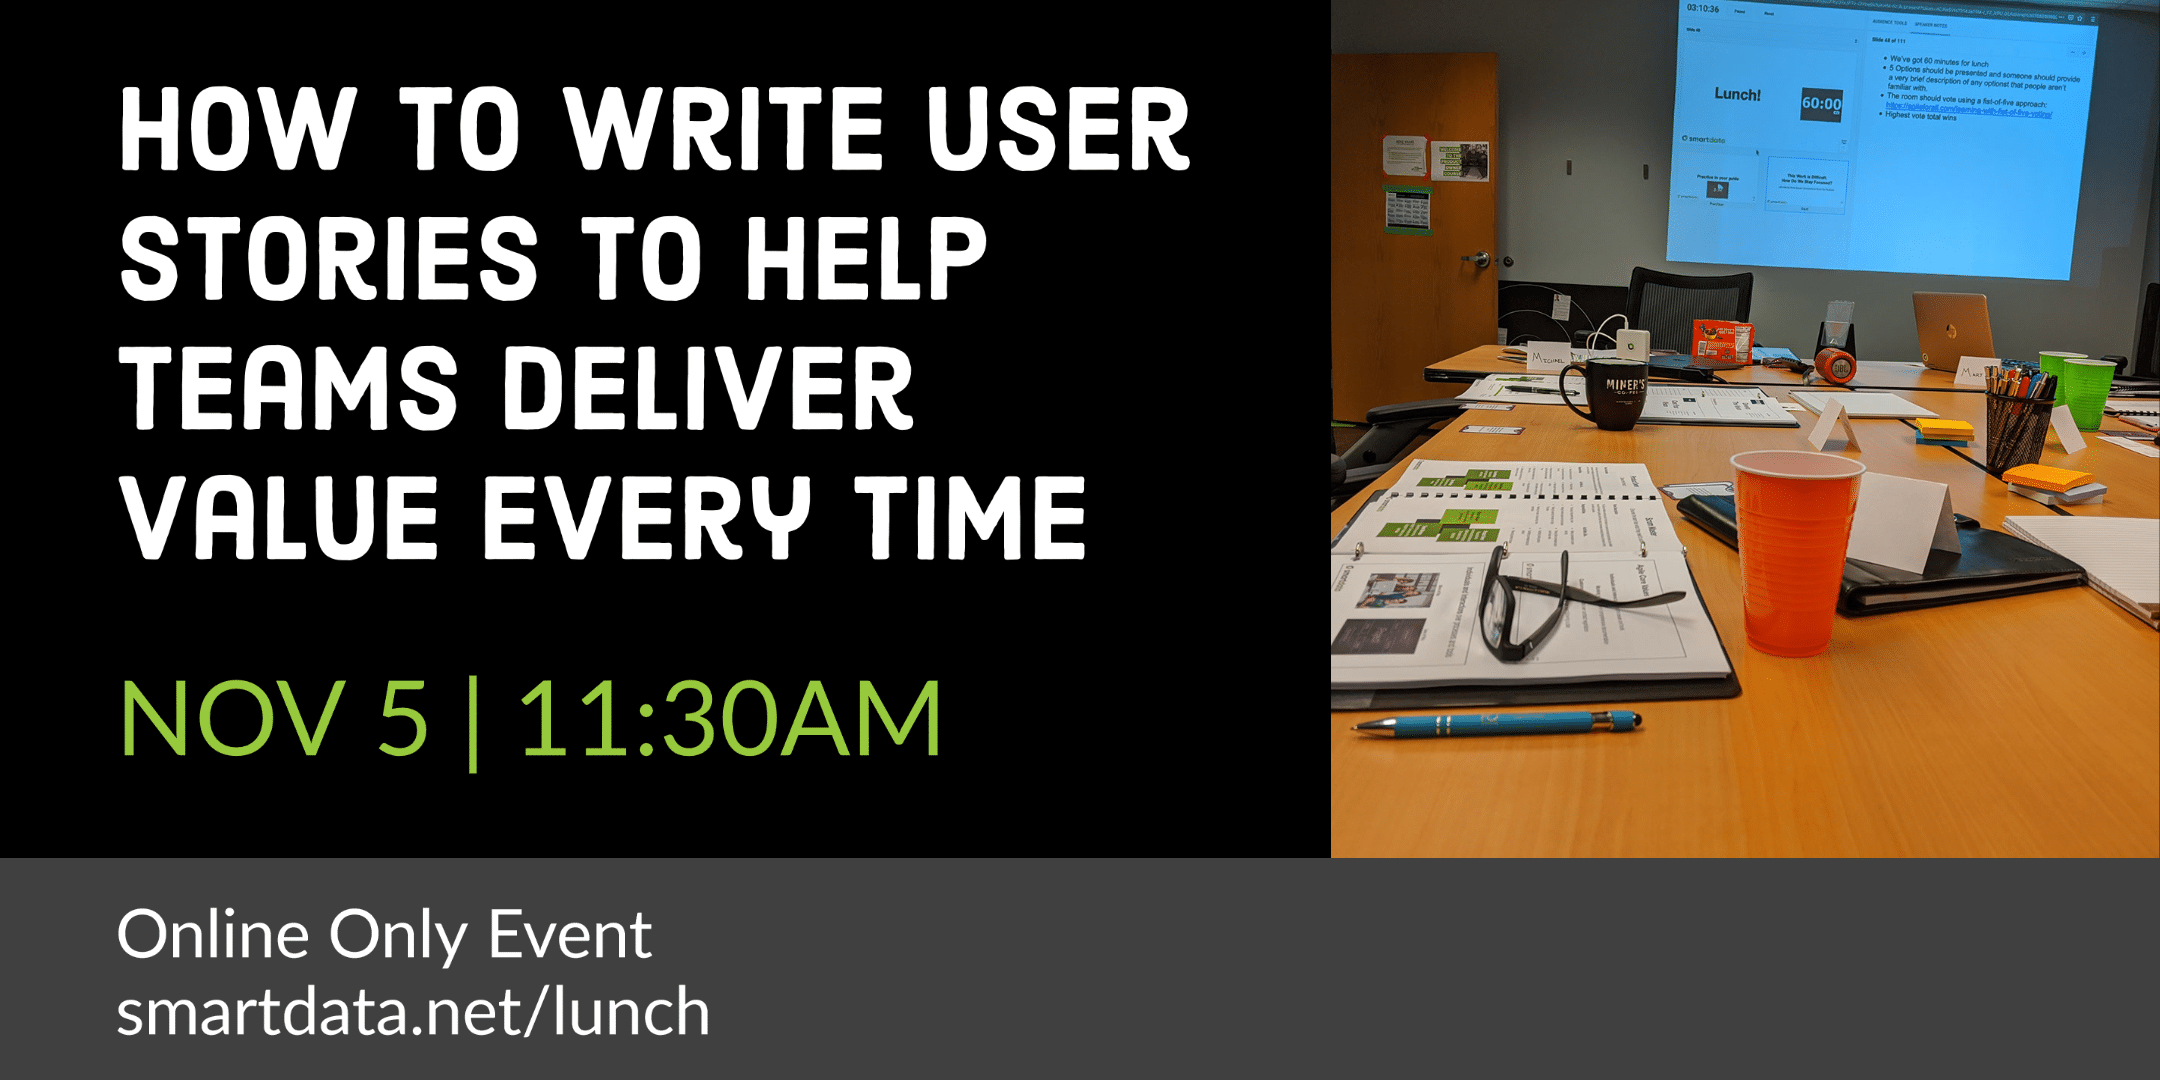 How to Write User Stories to Help Teams Deliver Value Every Time Nov 5 11:30am Online Only Event